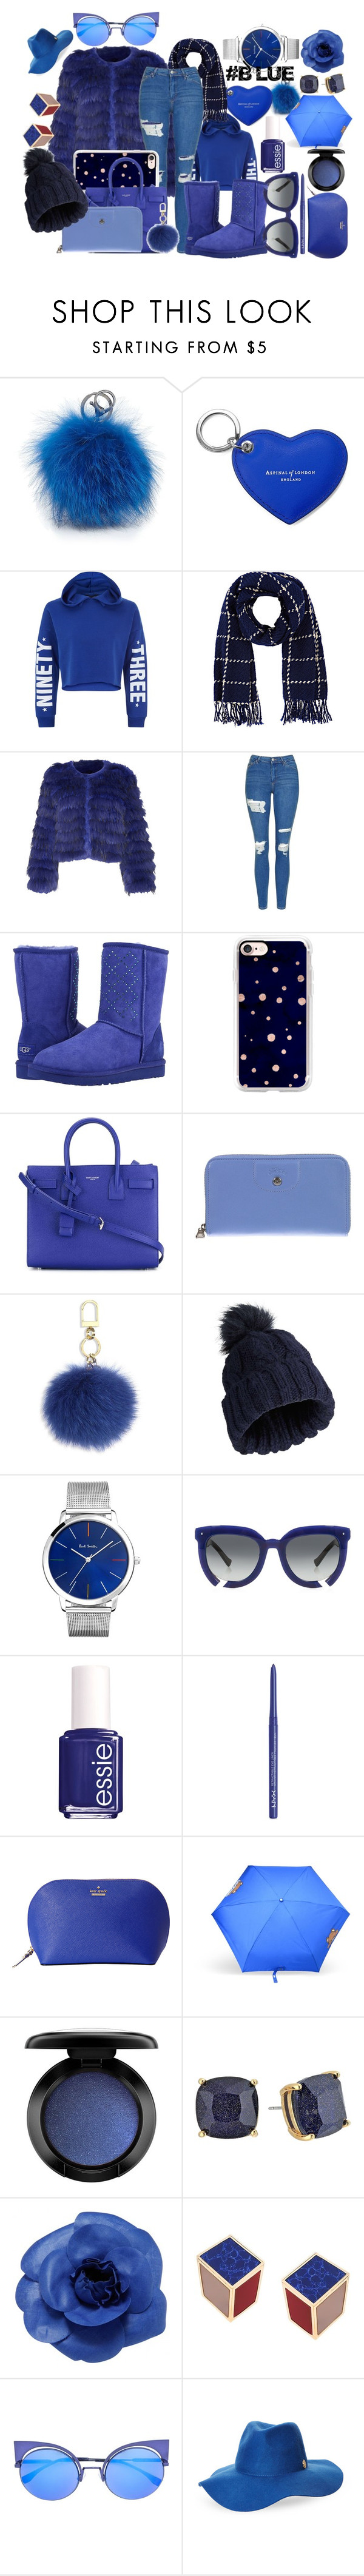 """#blue"" by queeniekori on Polyvore featuring Adrienne Landau, Aspinal of London, New Look, Barneys New York, Alice + Olivia, Topshop, UGG, Casetify, Yves Saint Laurent and Longchamp"